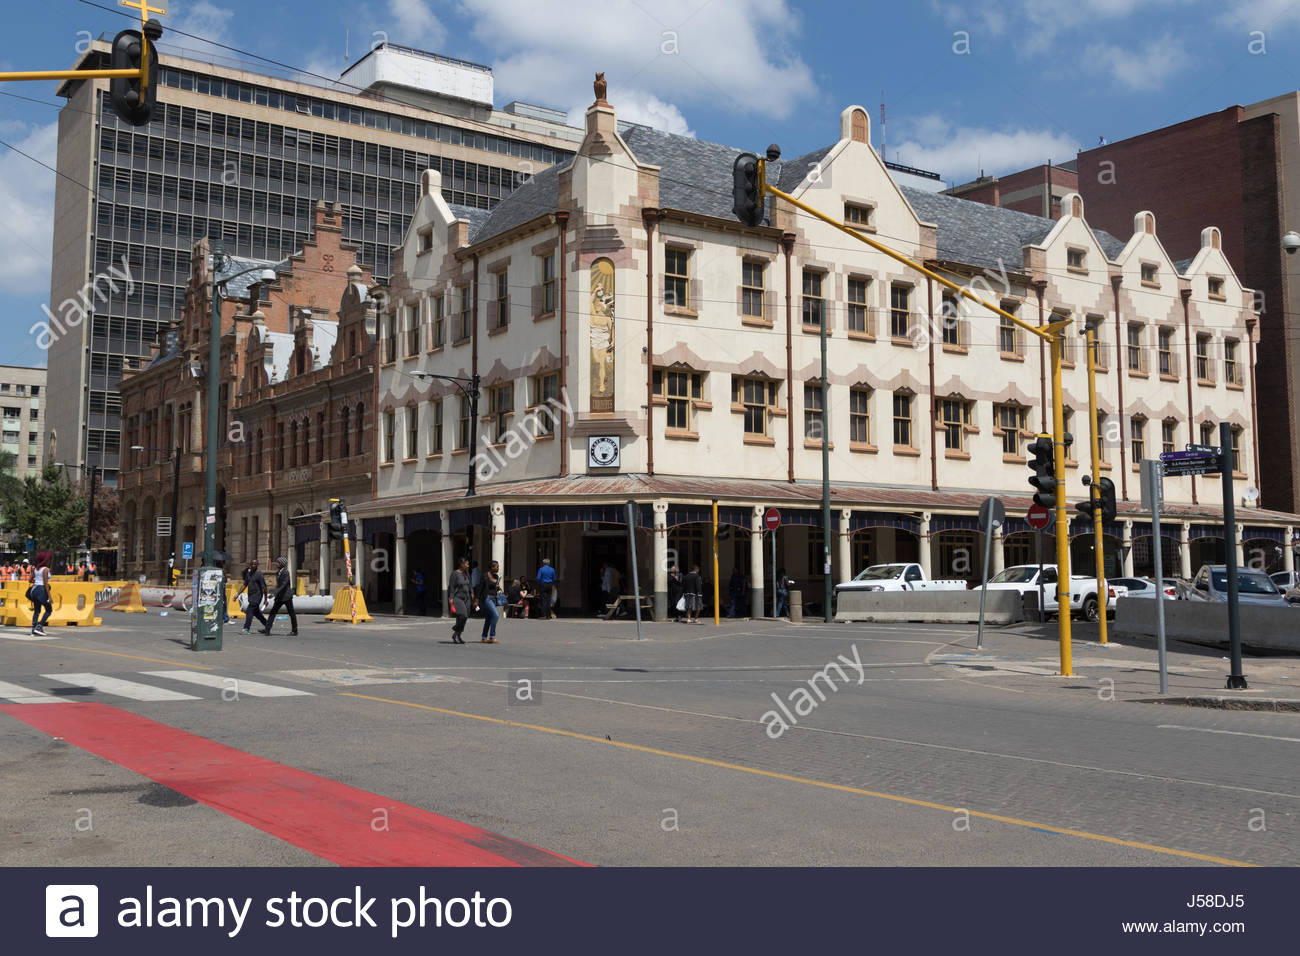 The exterior of the Cafe Riche in Church Square, Pretoria. Built in 1905 it claims to be the oldest bar in Pretoria. - Stock Image